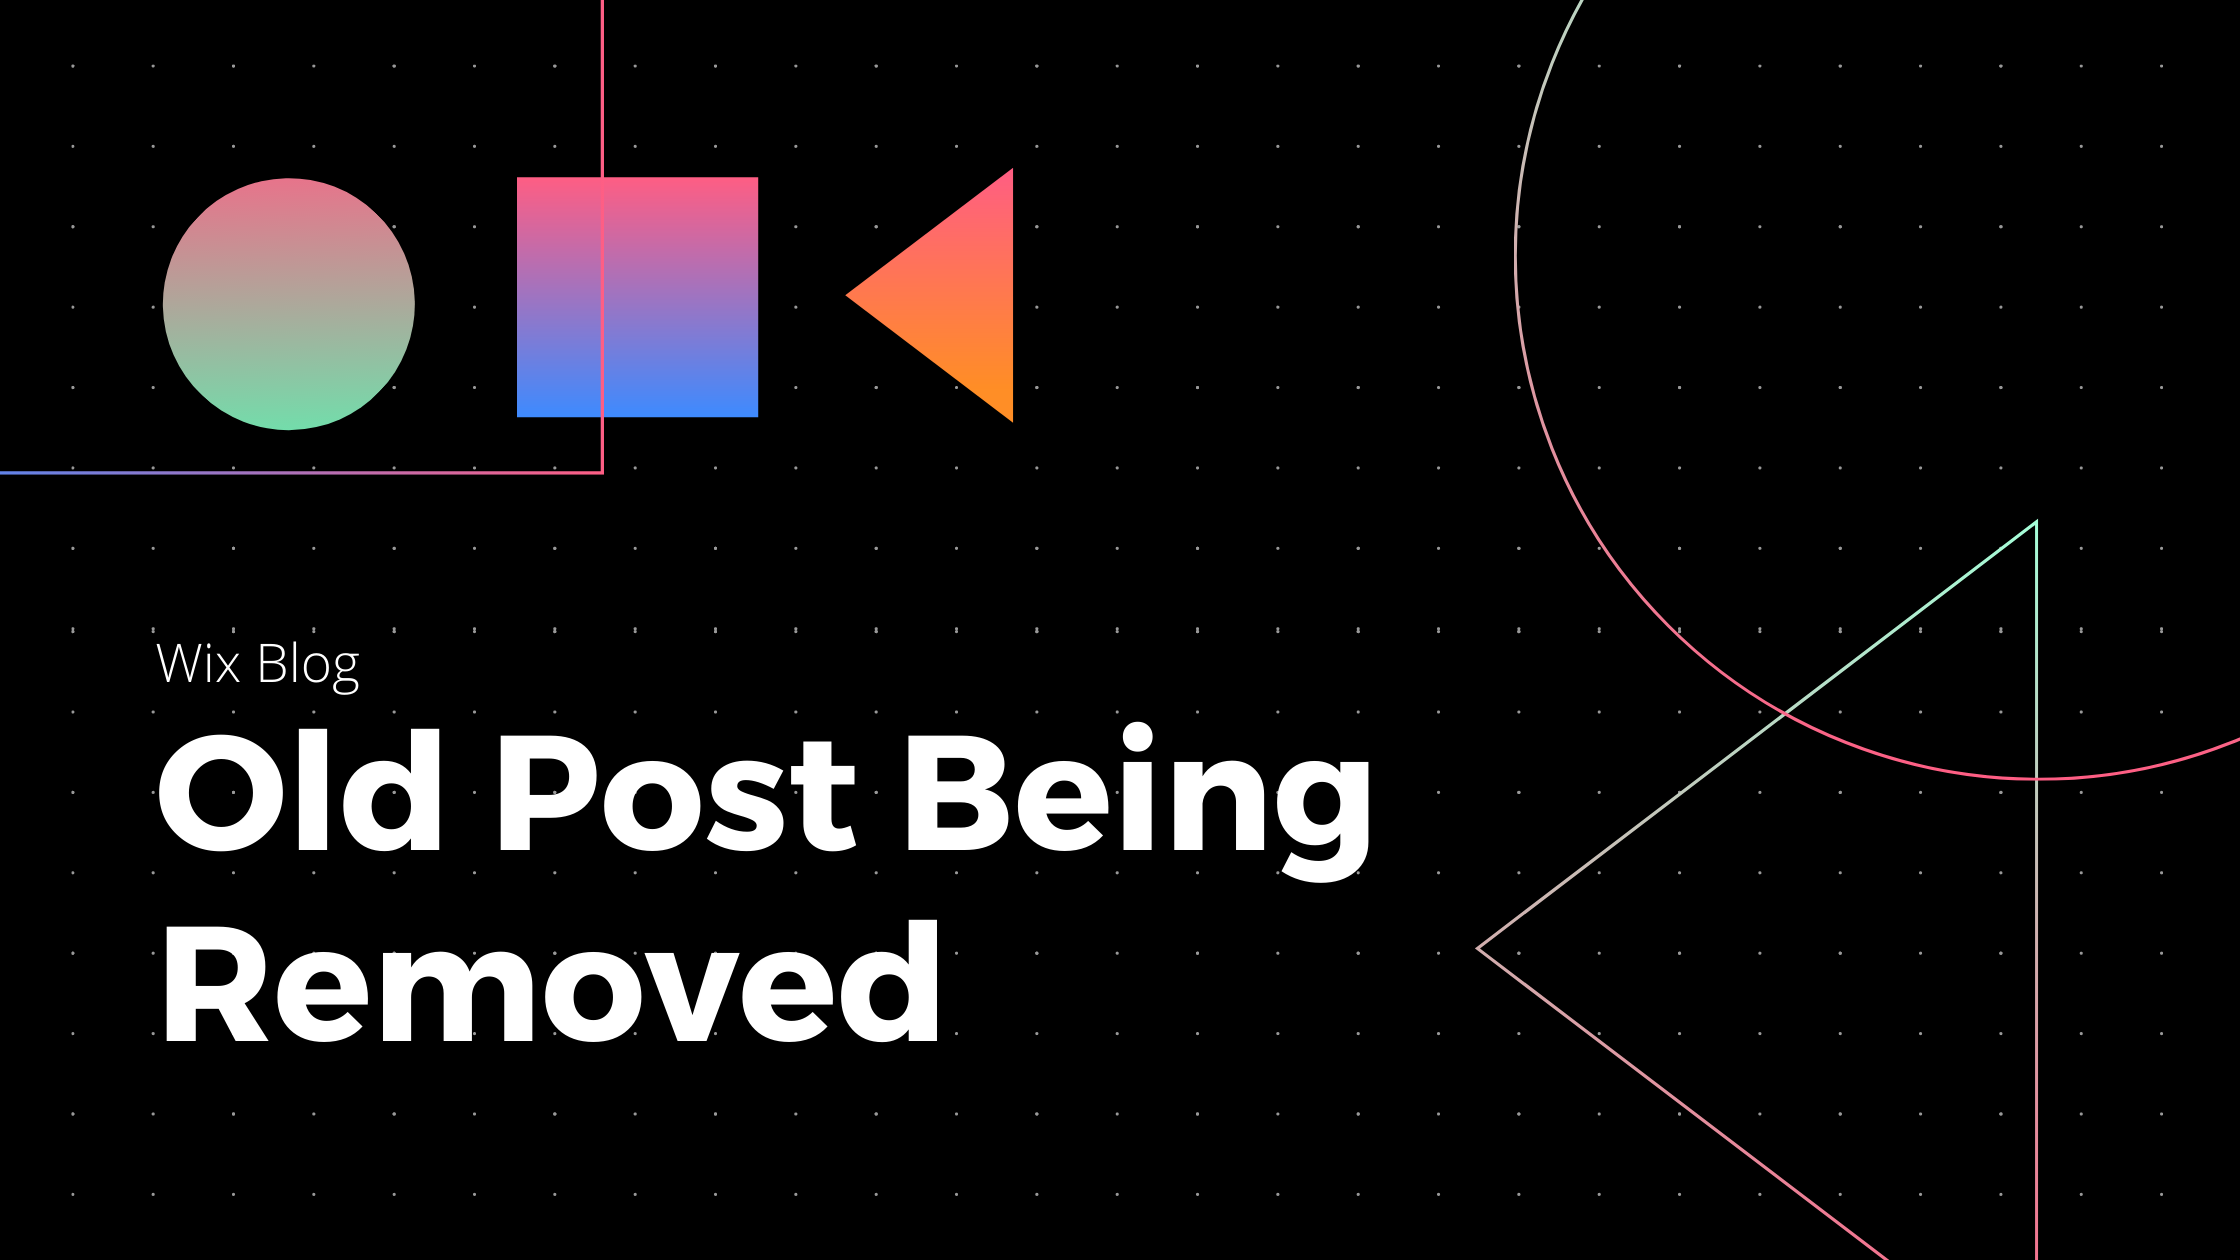 Wix Blog: Old Post Disappeared - Solution